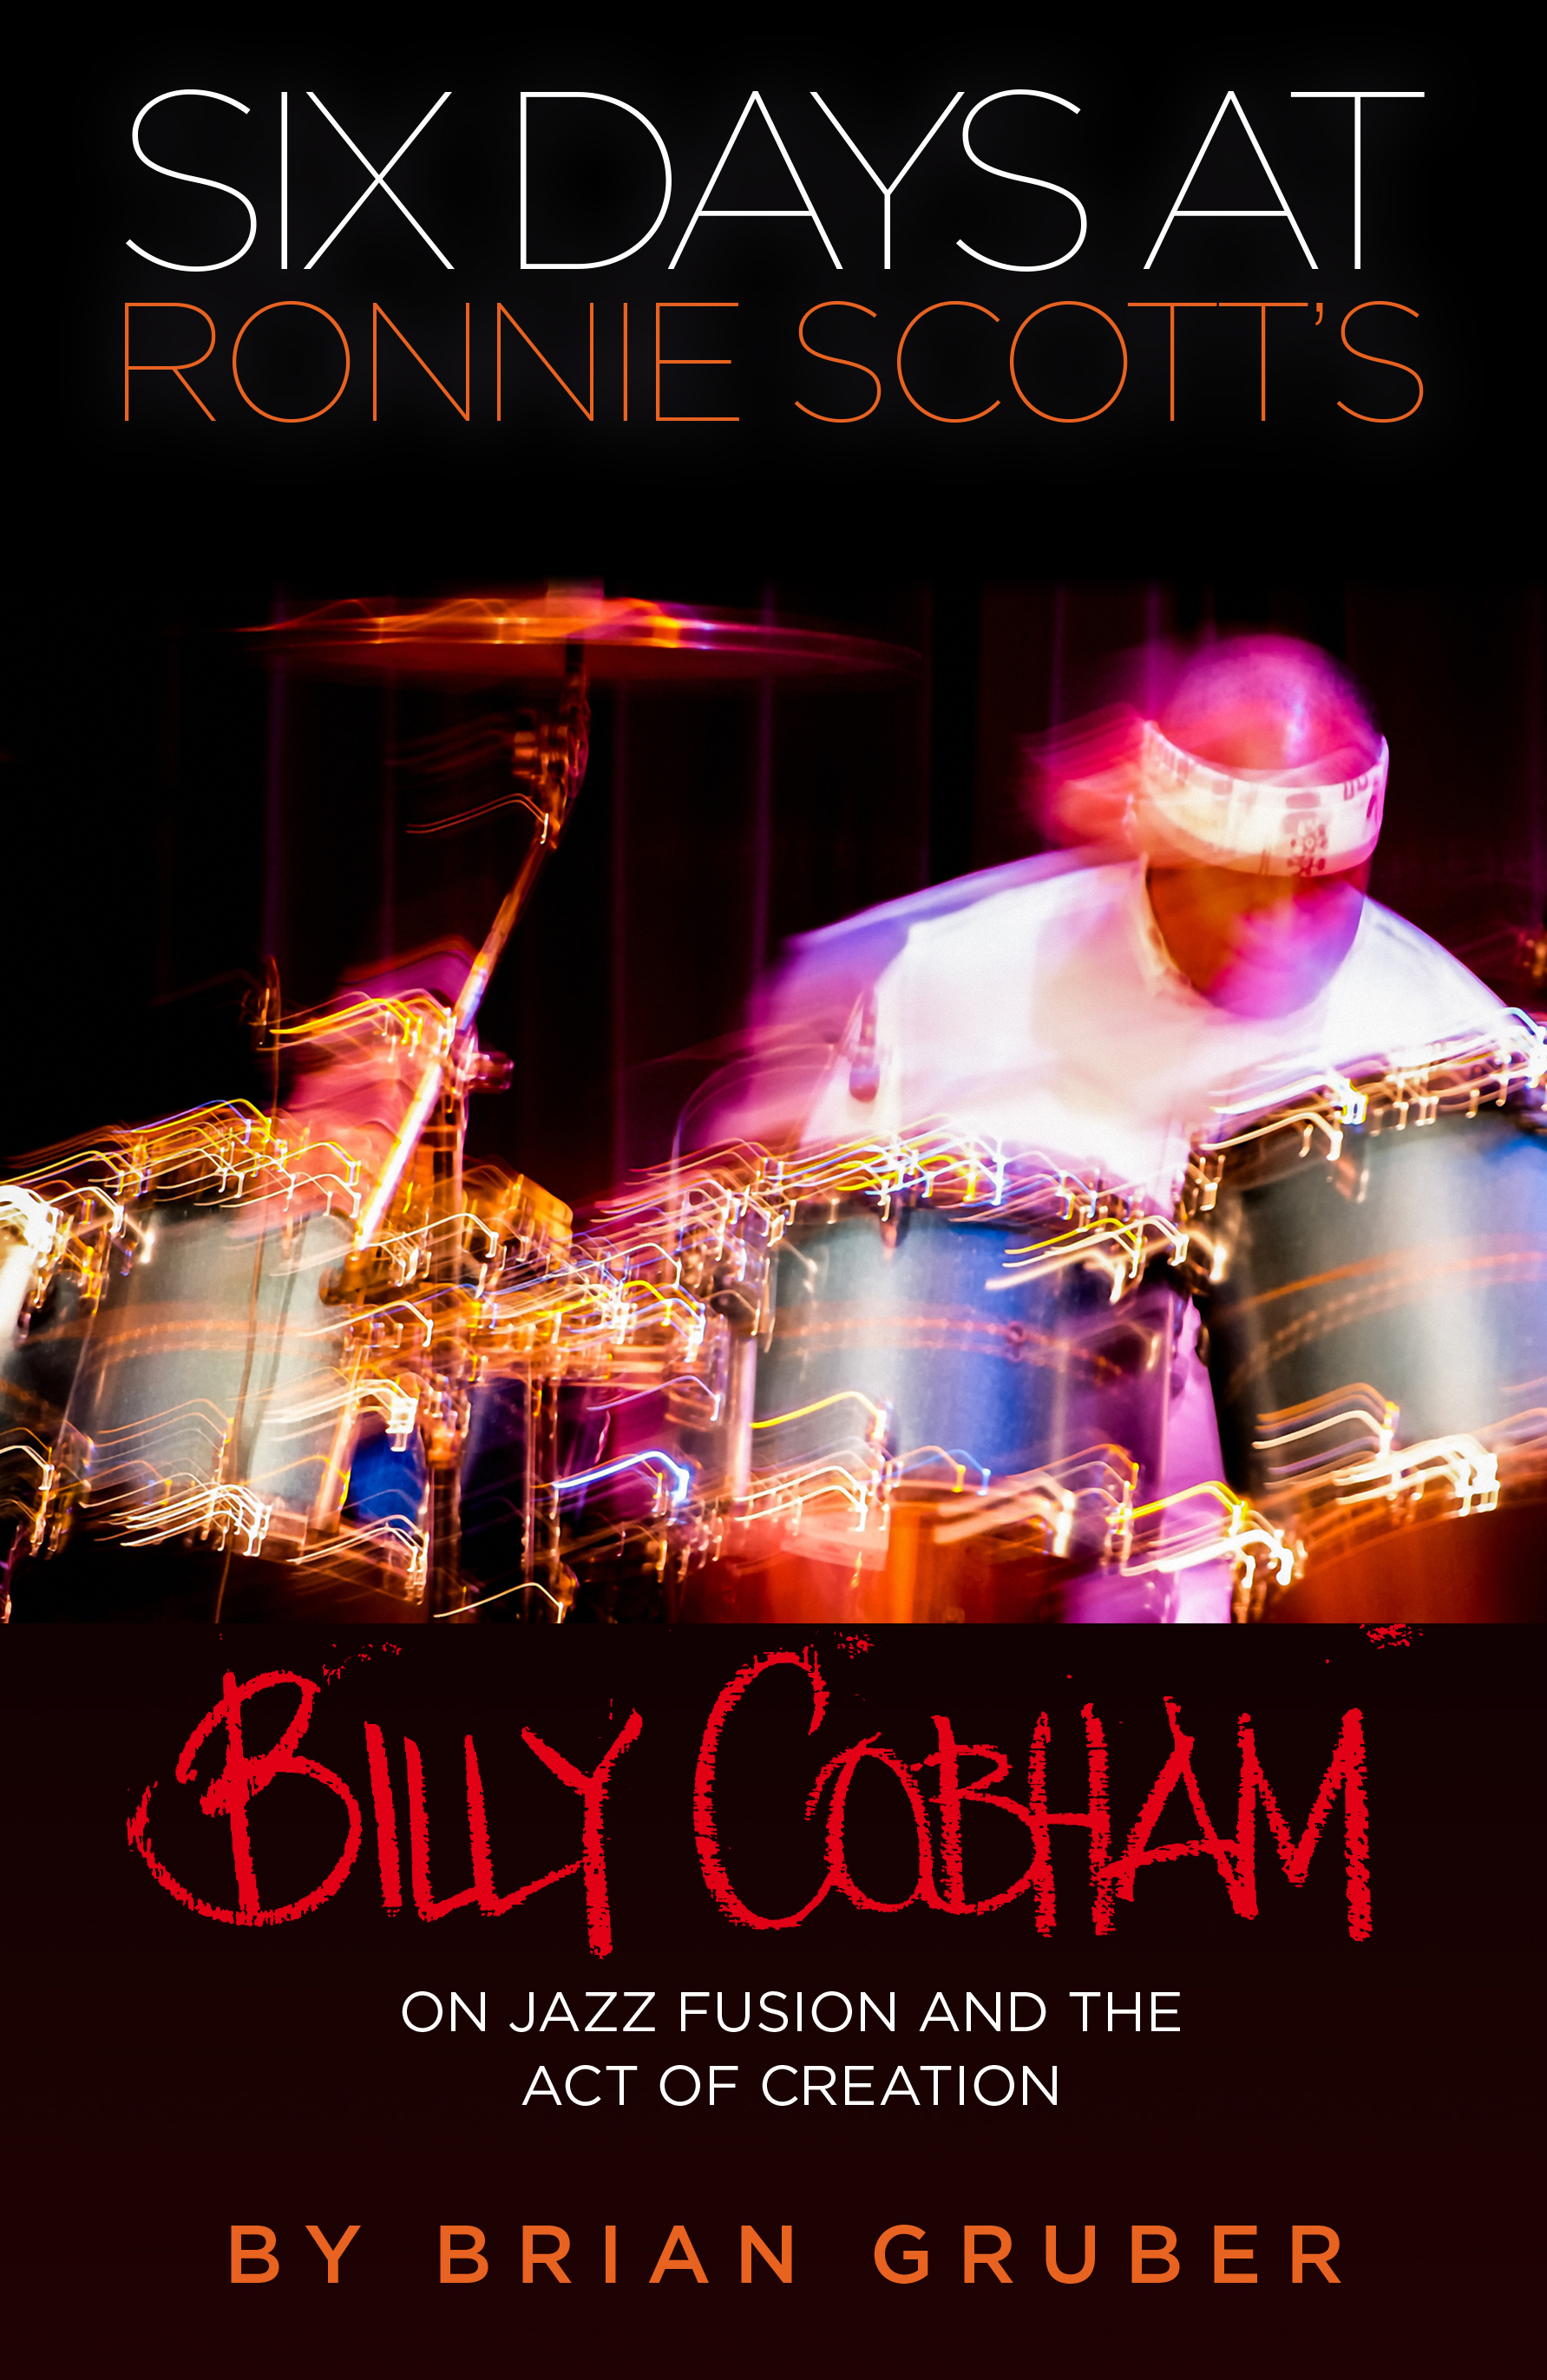 Billy Cobham book cover